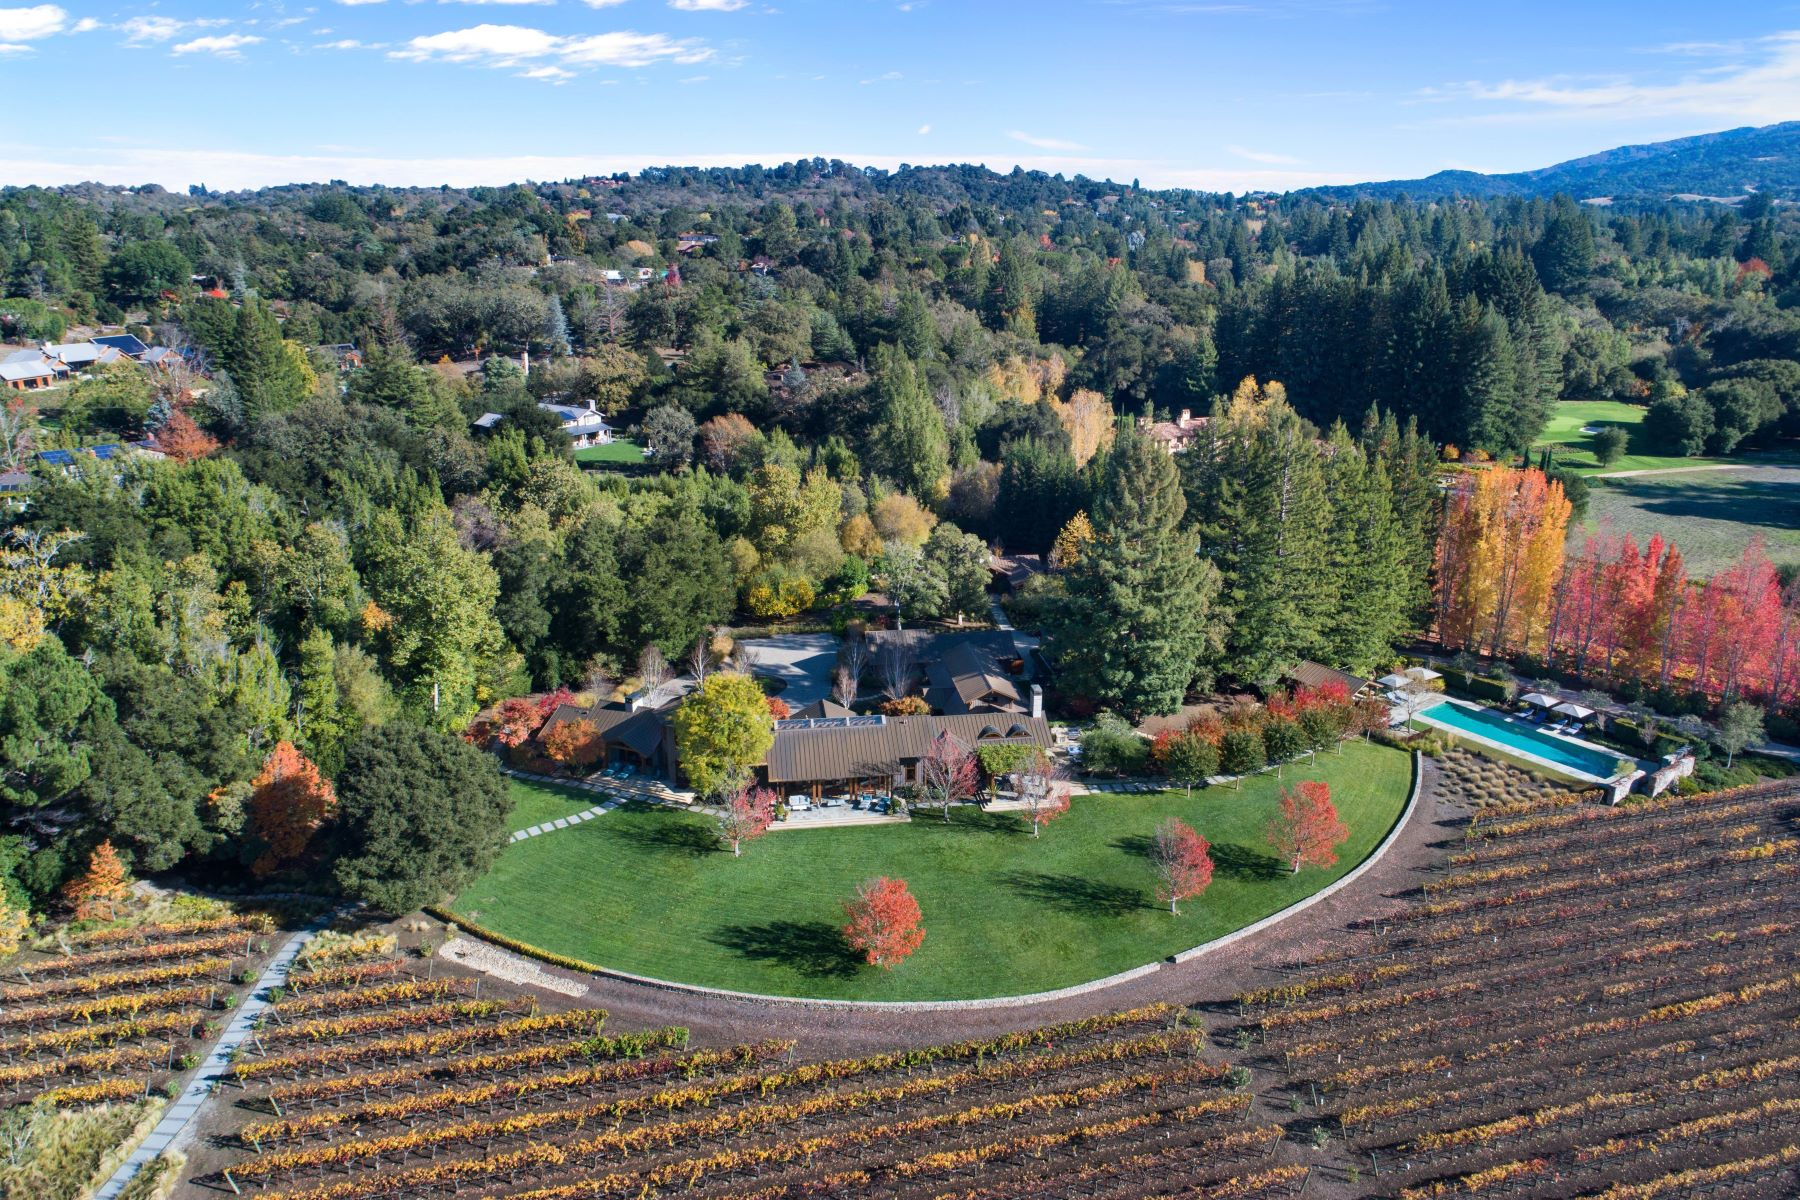 Maison unifamiliale pour l Vente à Woodside Vineyard Estate Woodside, Californie 94062 États-Unis